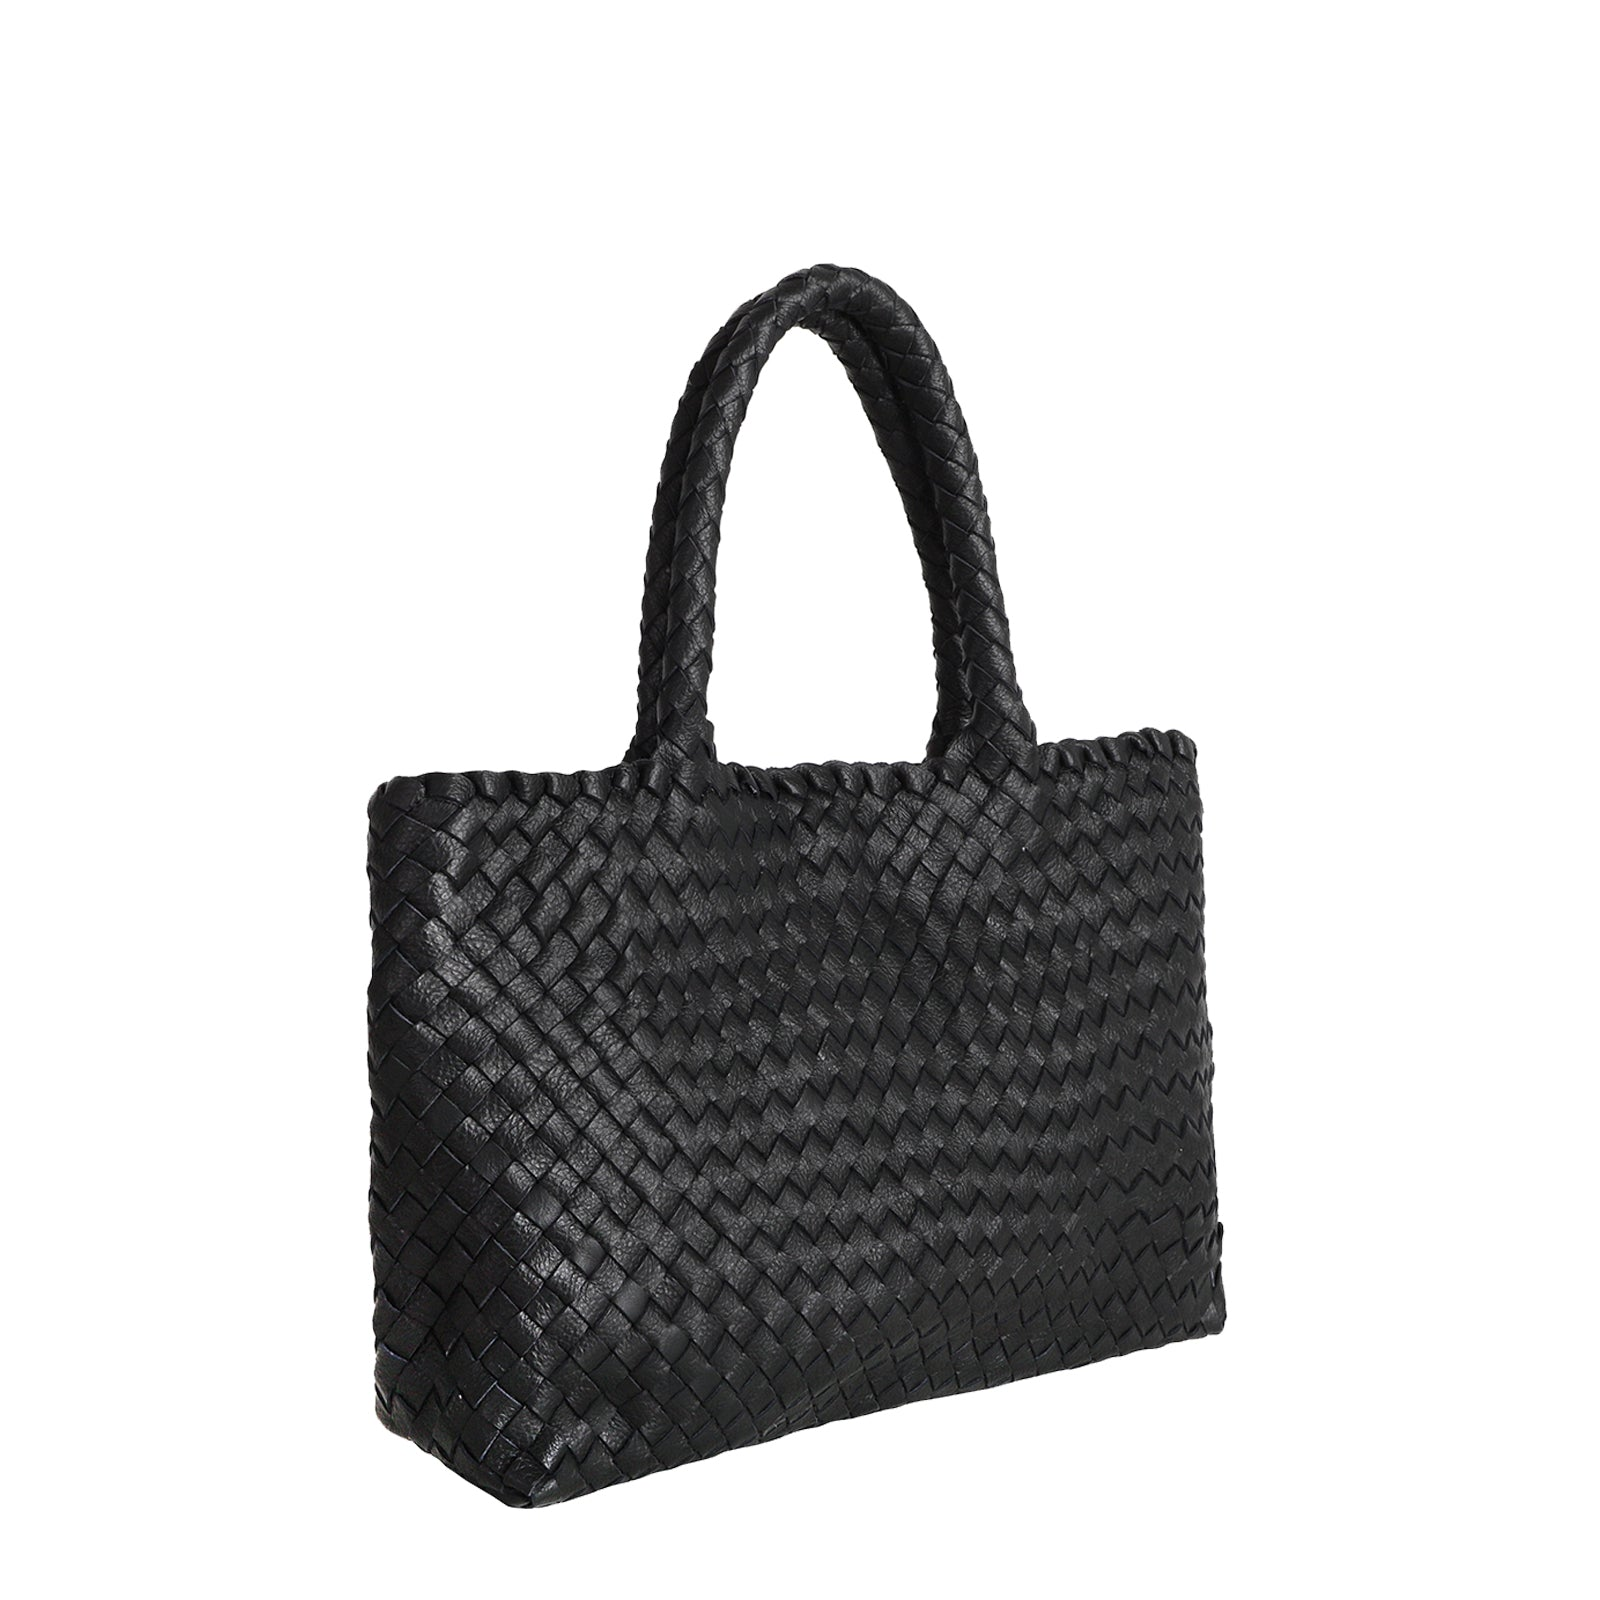 The Mini Elena Woven Handbag in Black